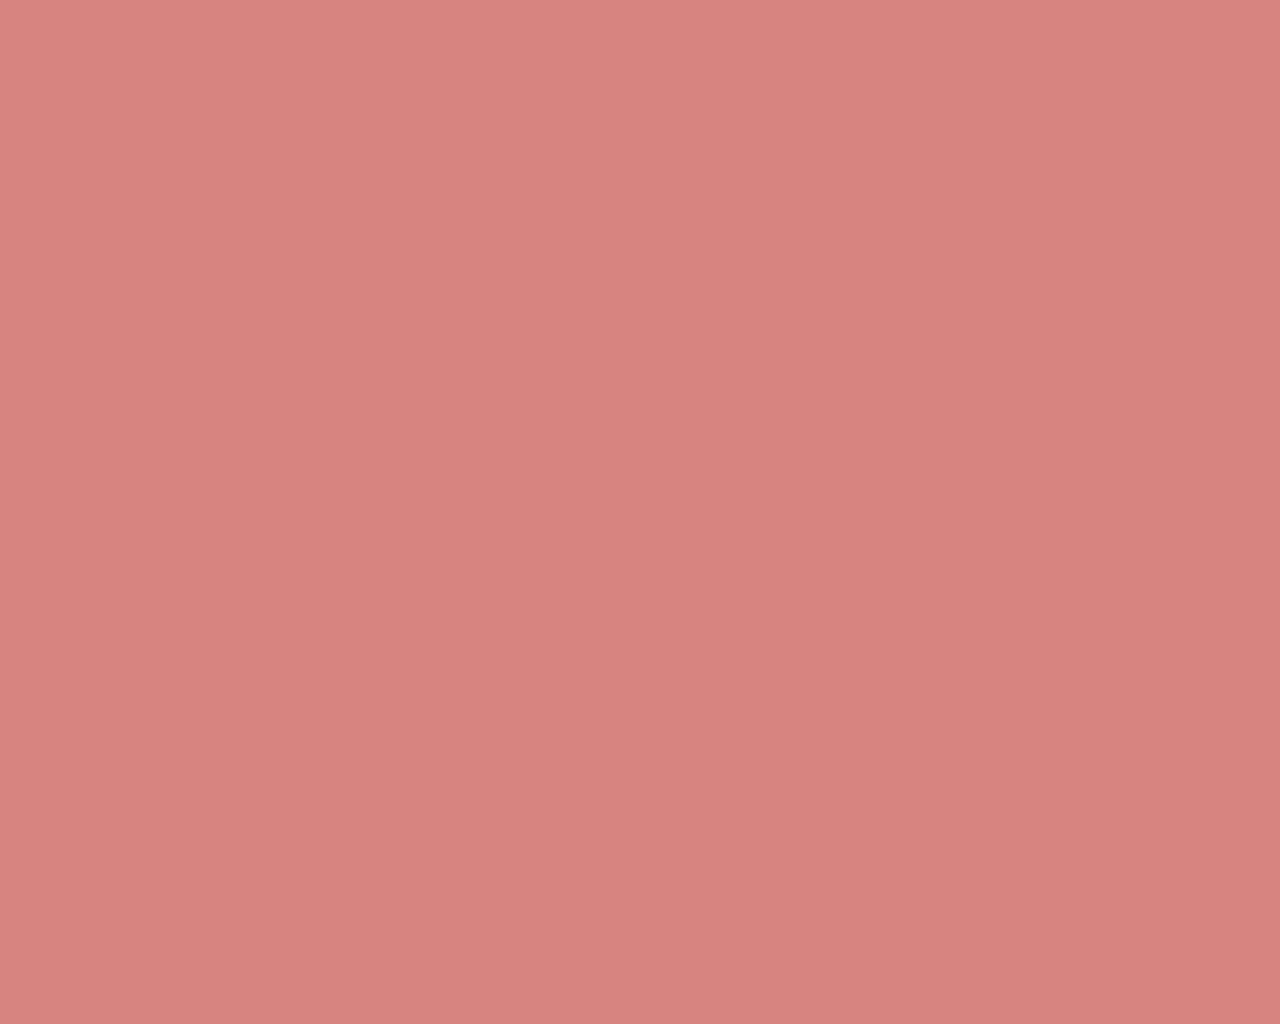 1280x1024 New York Pink Solid Color Background